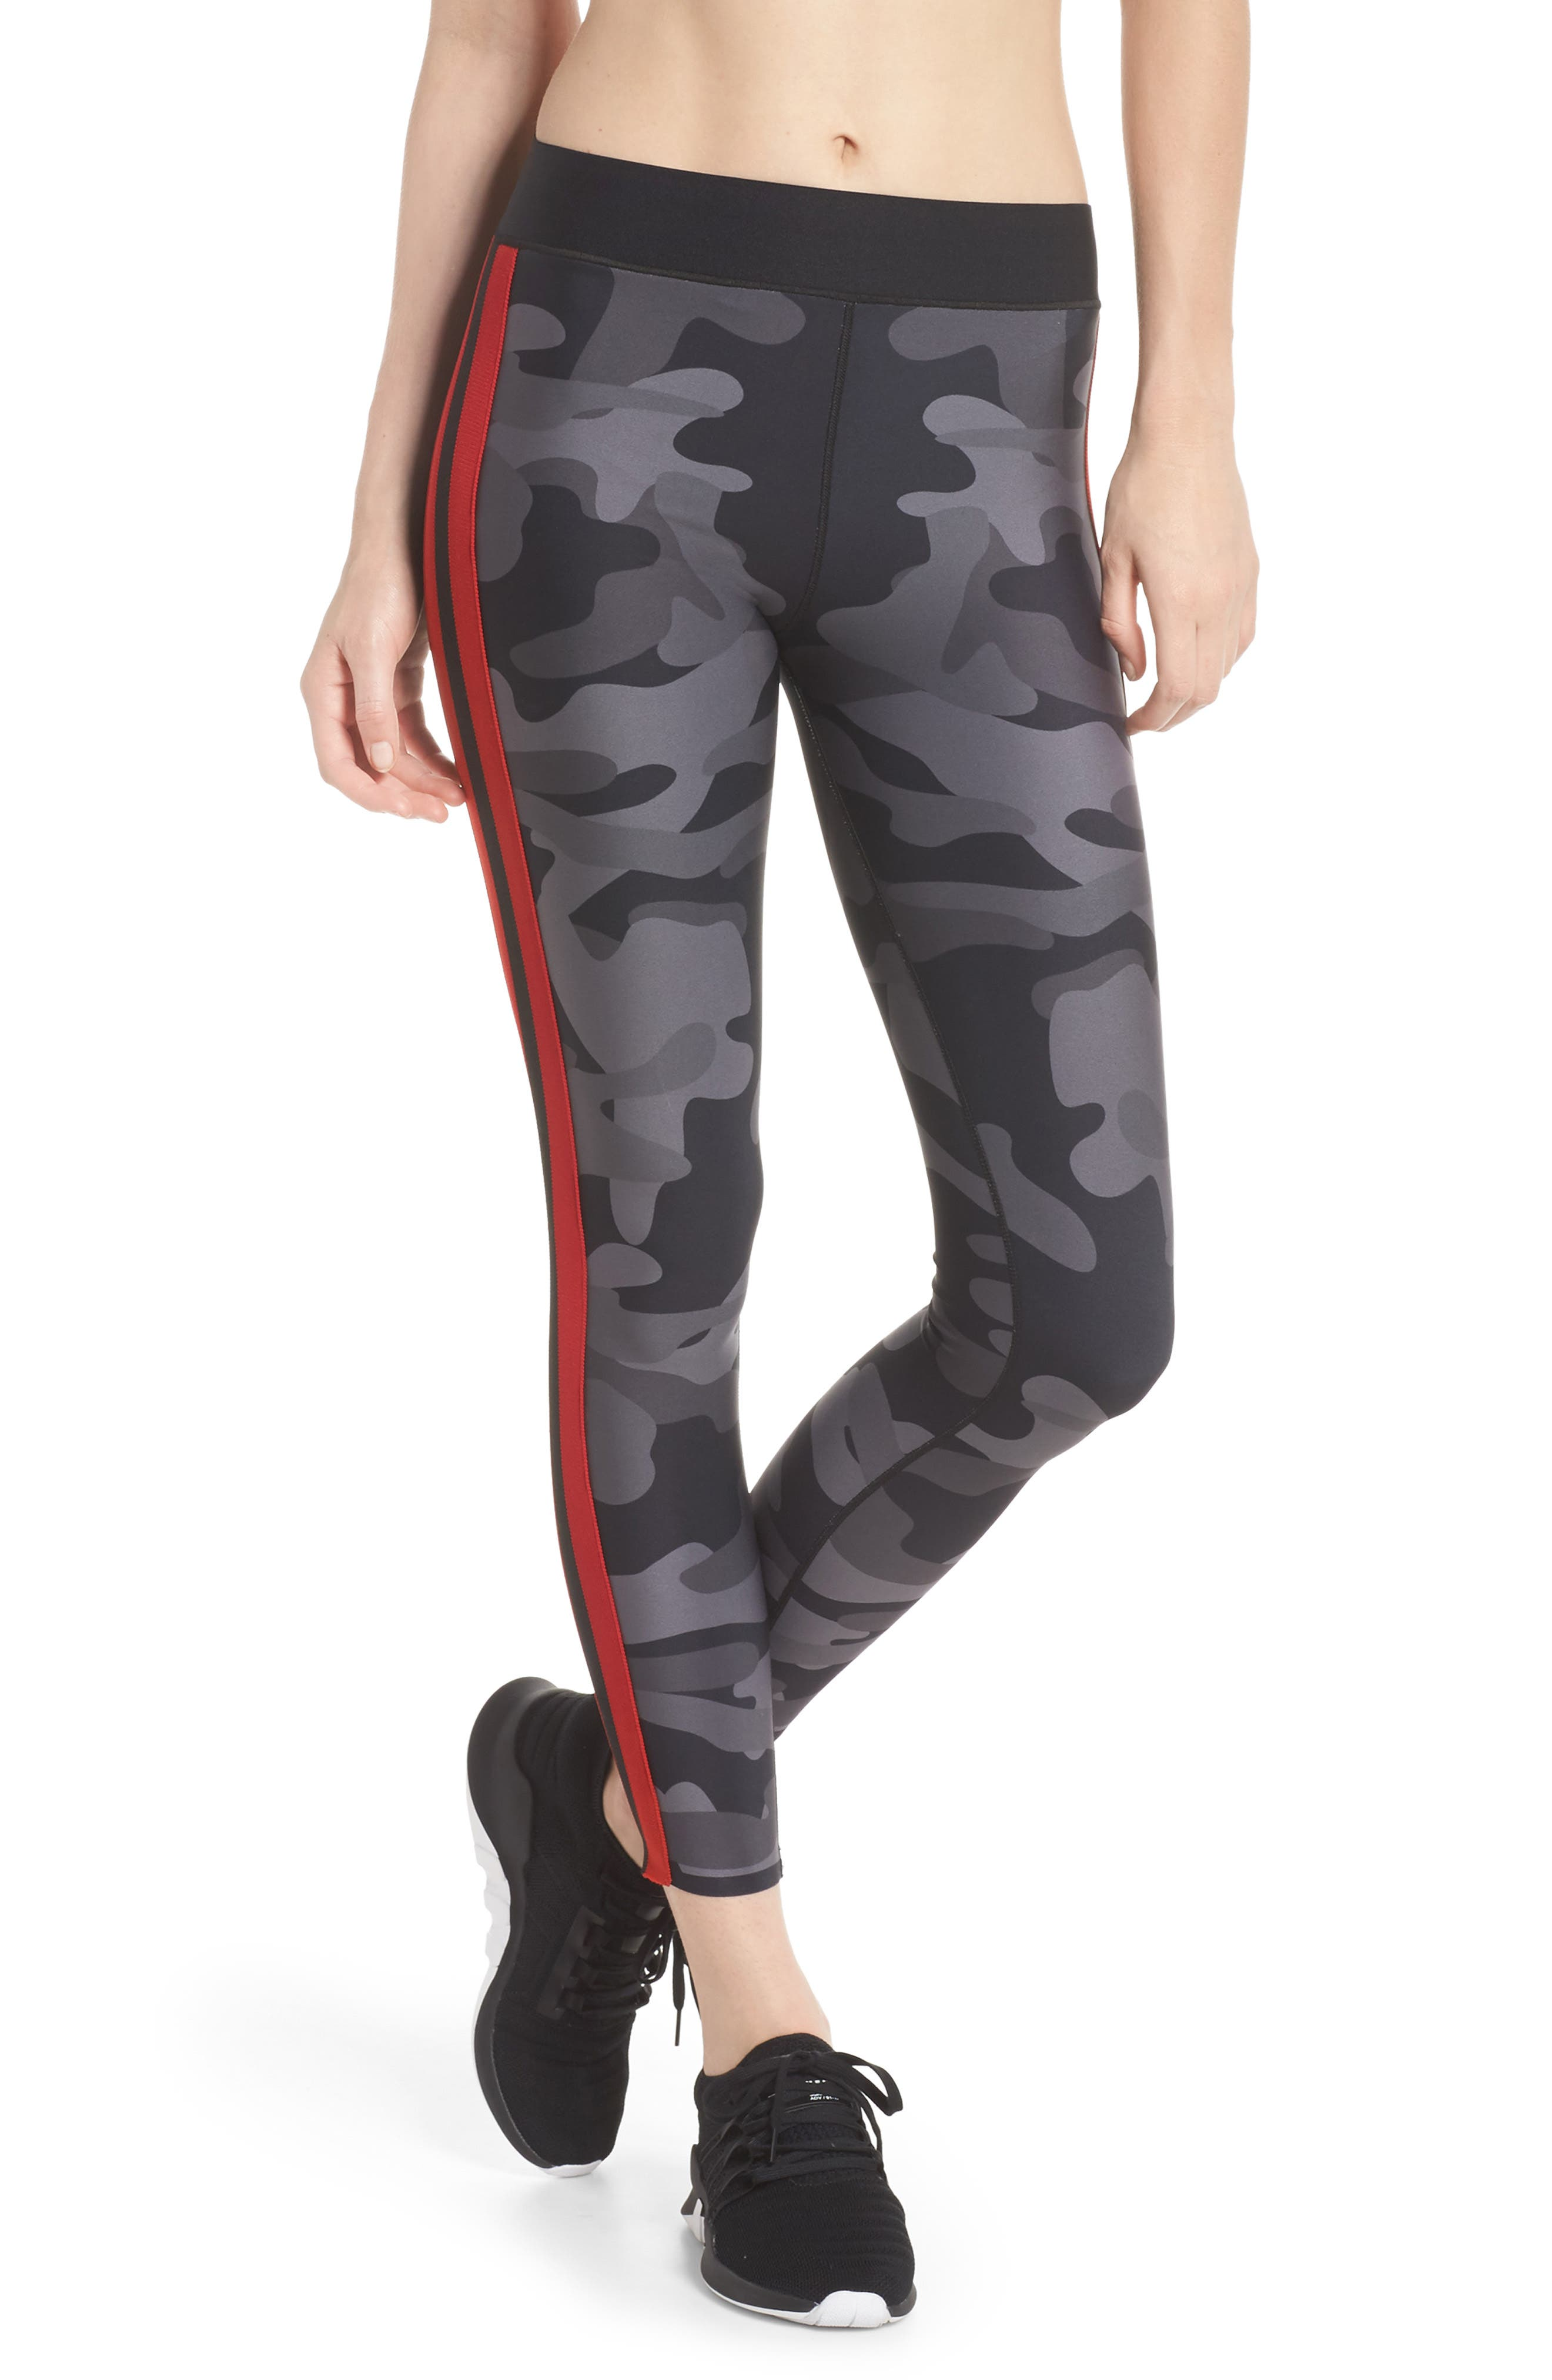 Ultra Camo Collegiate Leggings,                             Main thumbnail 1, color,                             005